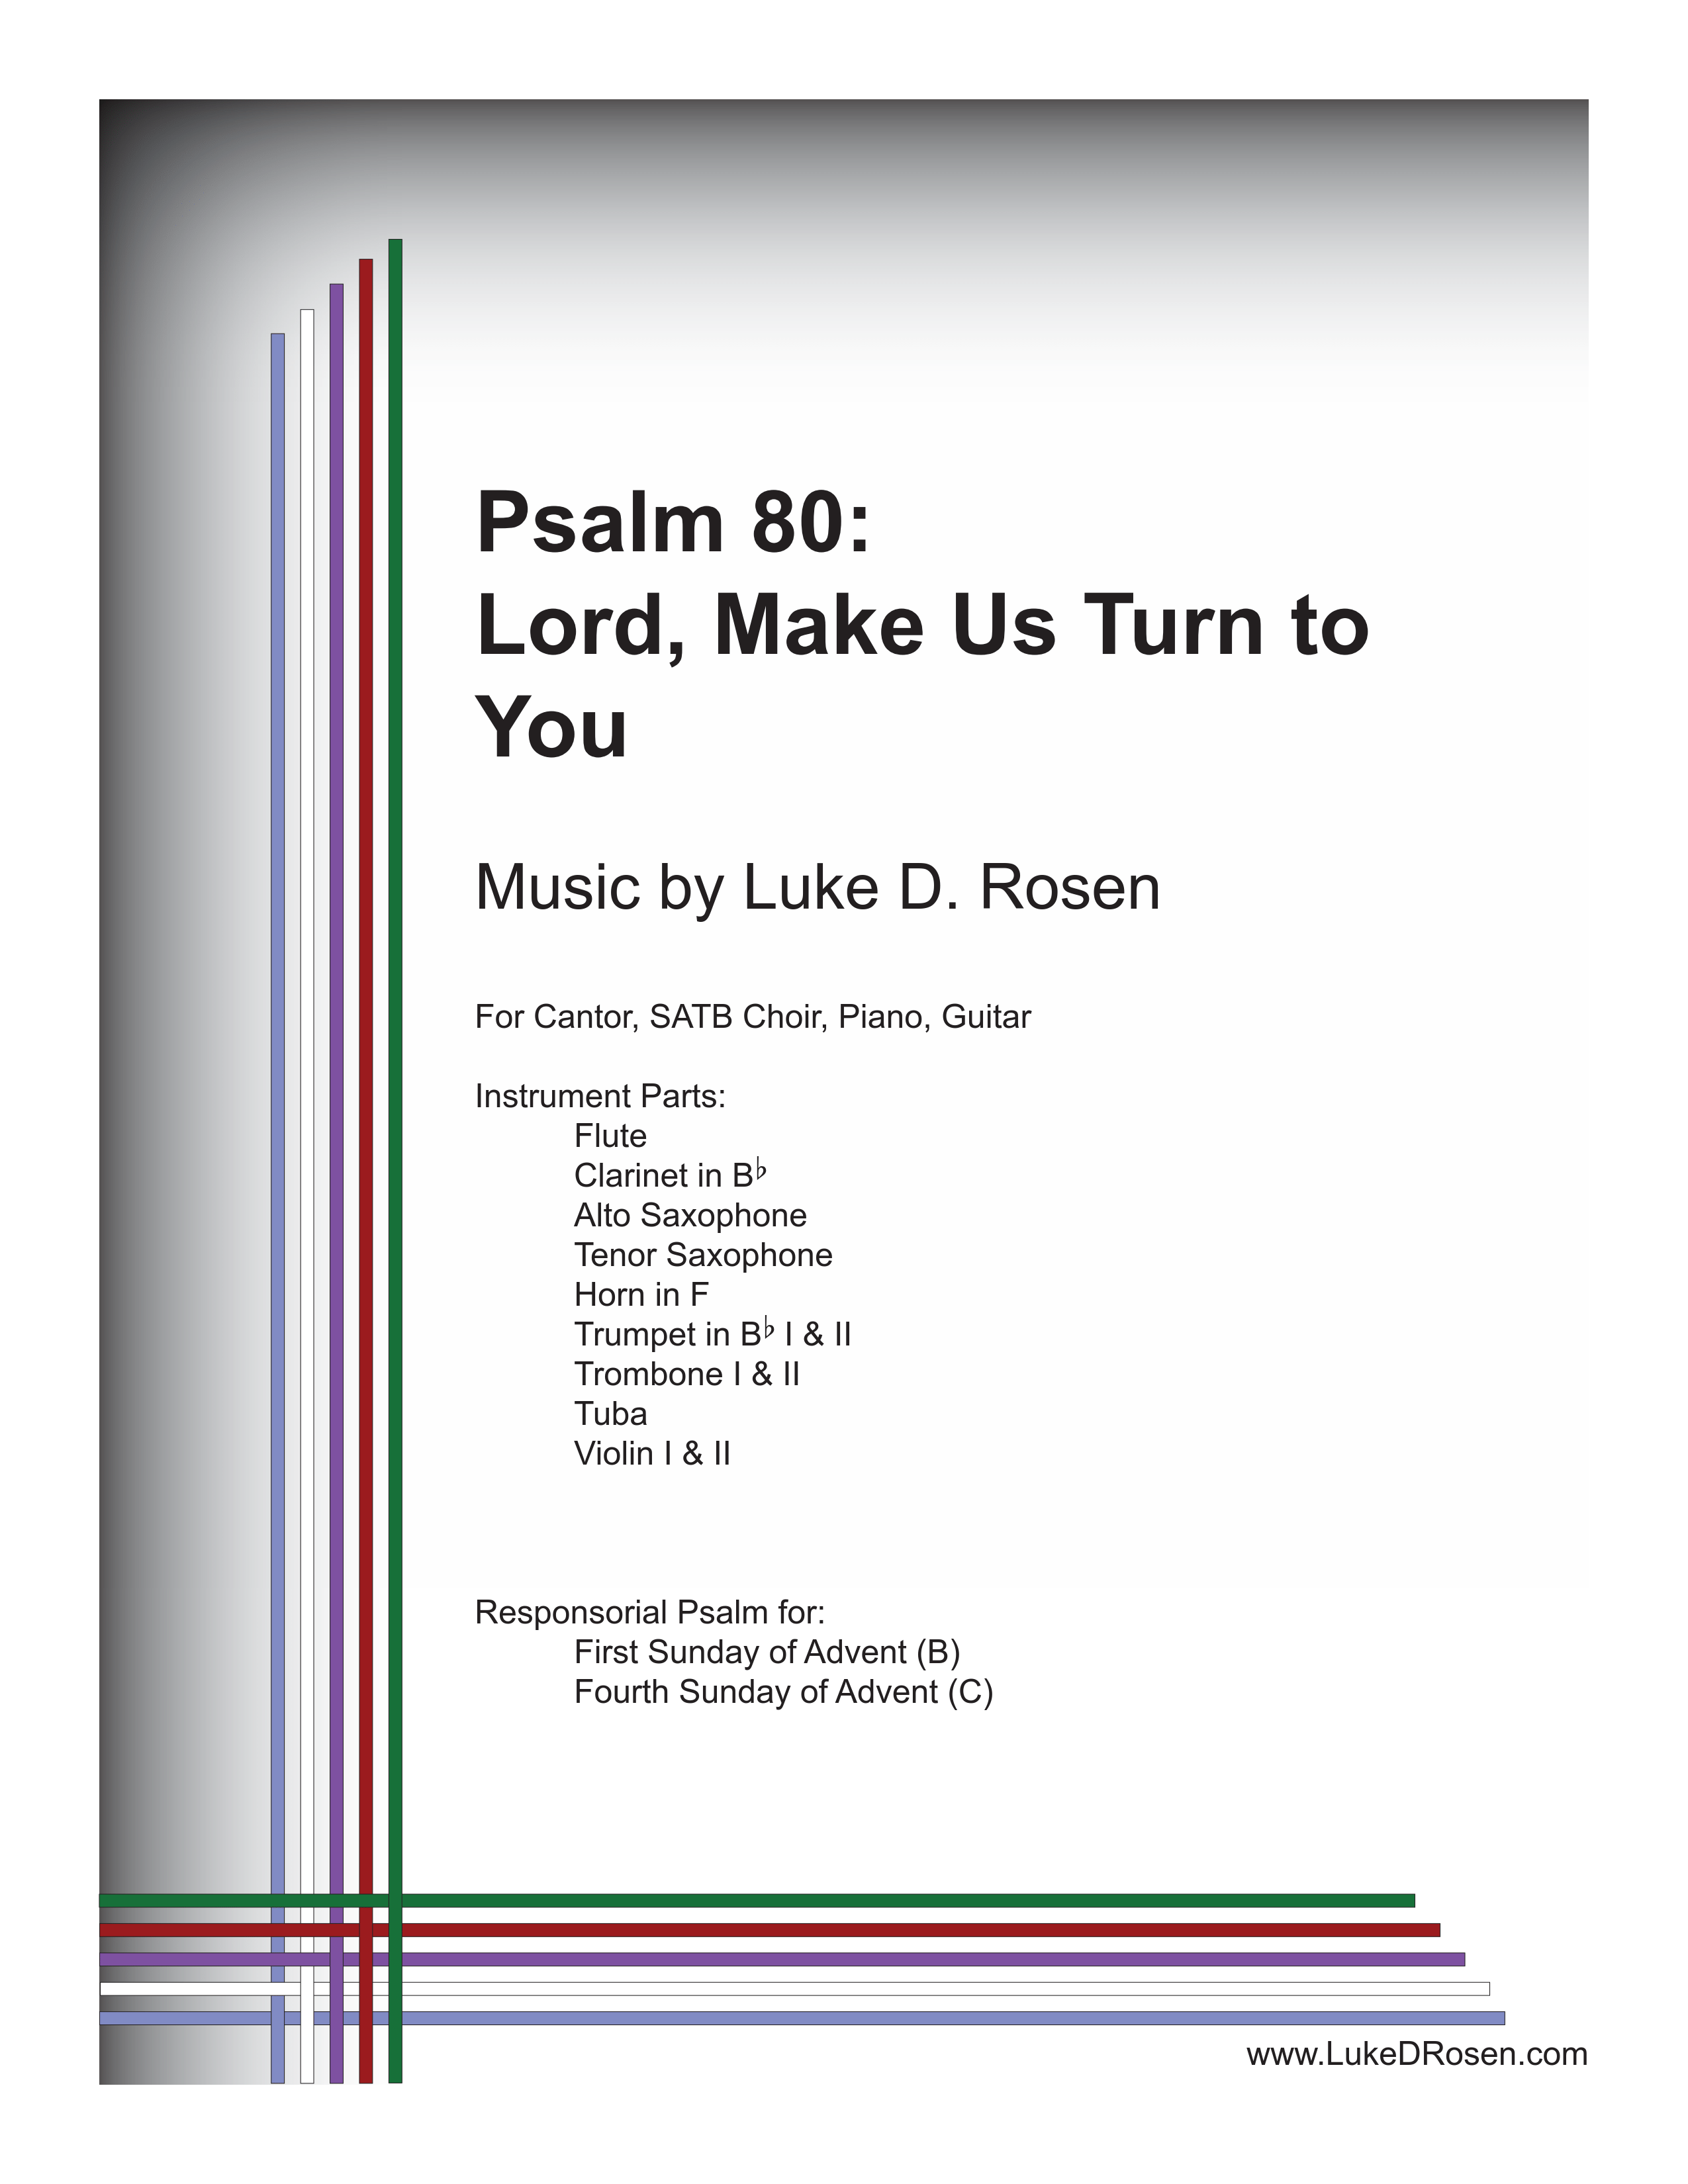 Psalm 80 Lord Make Us Turn to You Rosen Sample Complete PDF 1 png